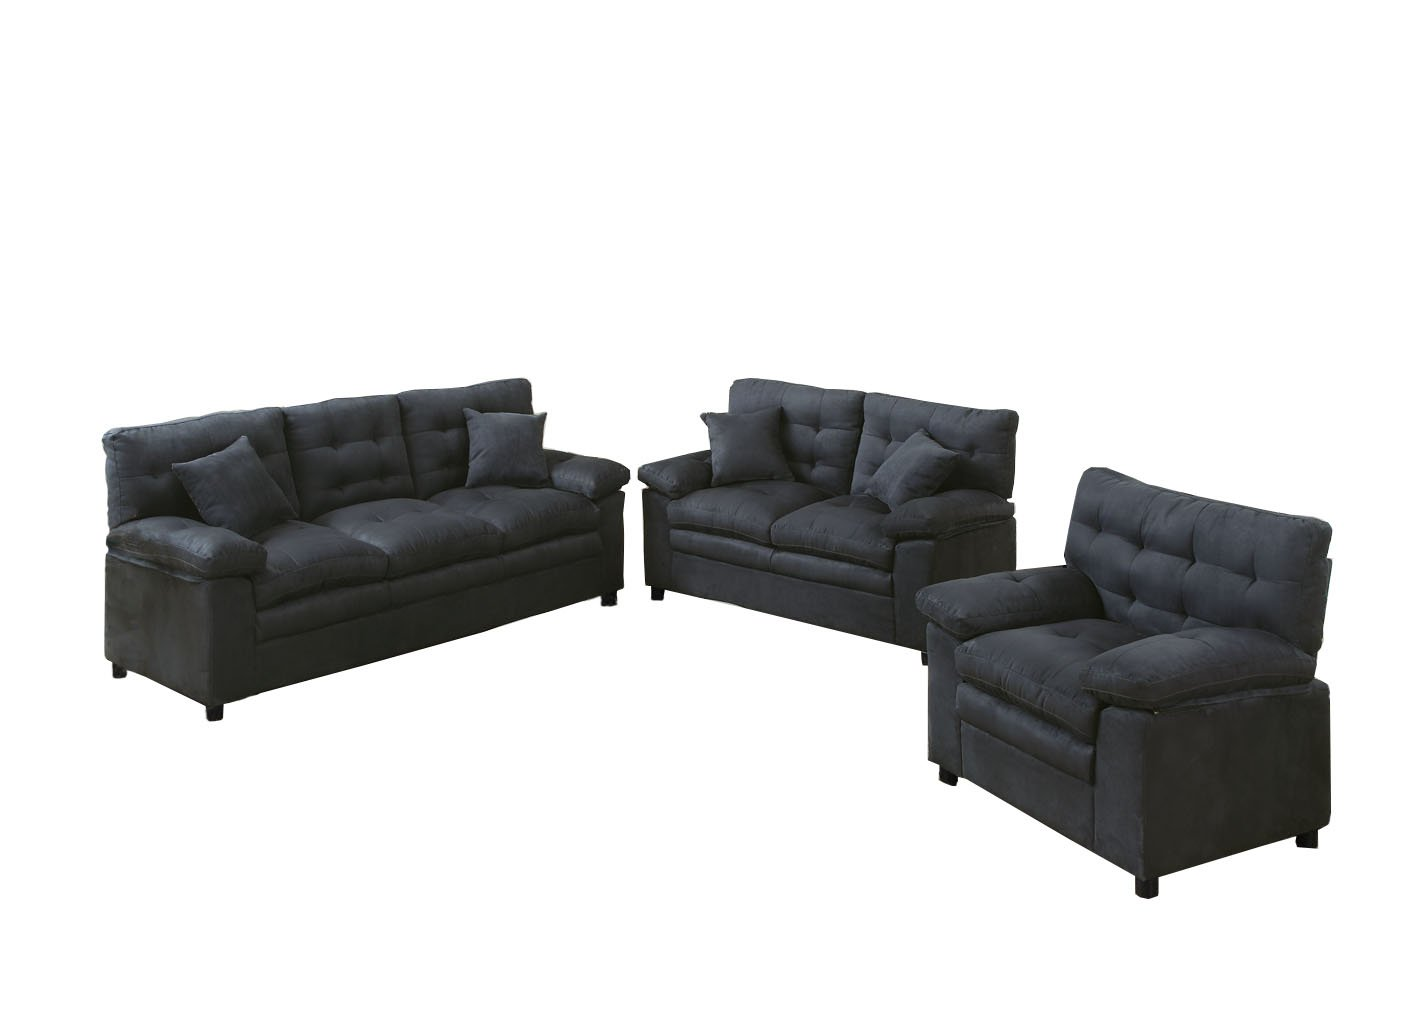 Poundex Bobkona Colona Mircosuede 3 Piece Sofa and Loveseat with Chair Set, Ash F7907